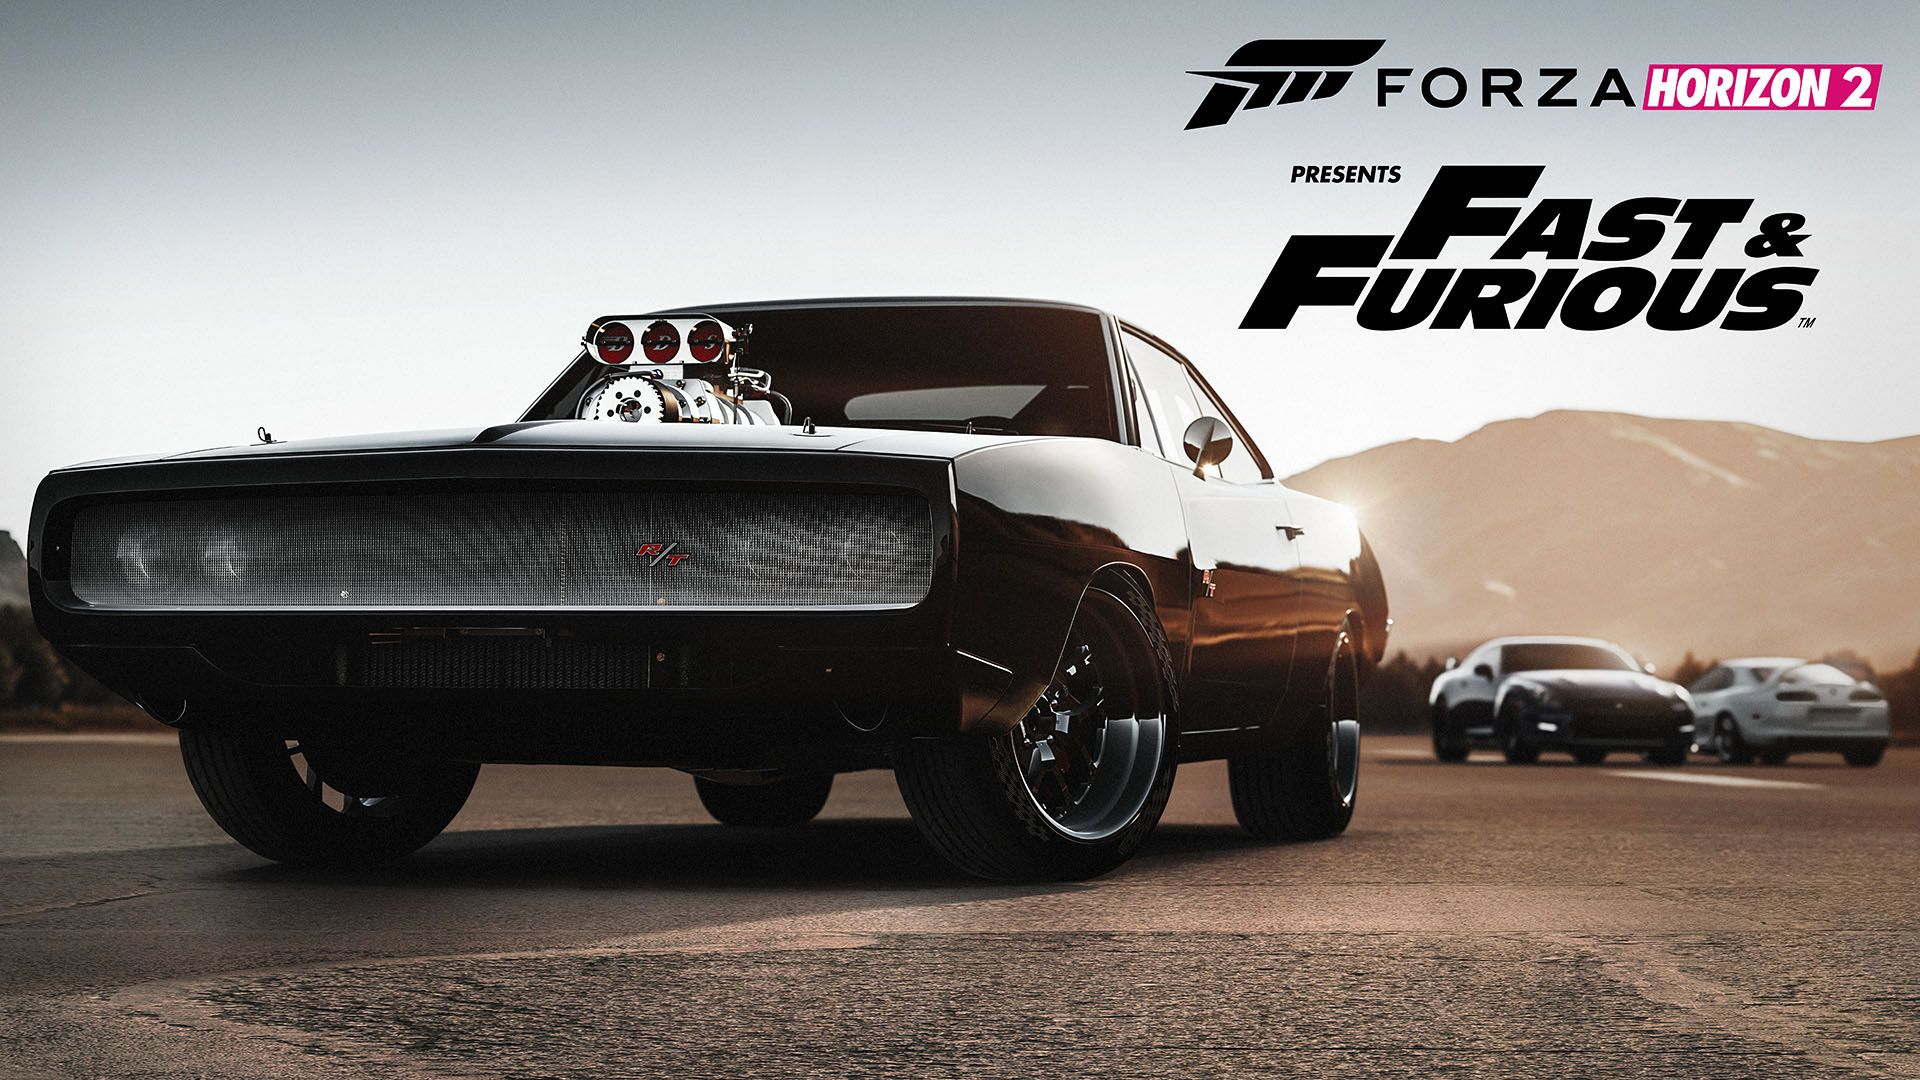 Download Fast And Furious 7 Cars Live Wallpaper Apk 1 0 Only In